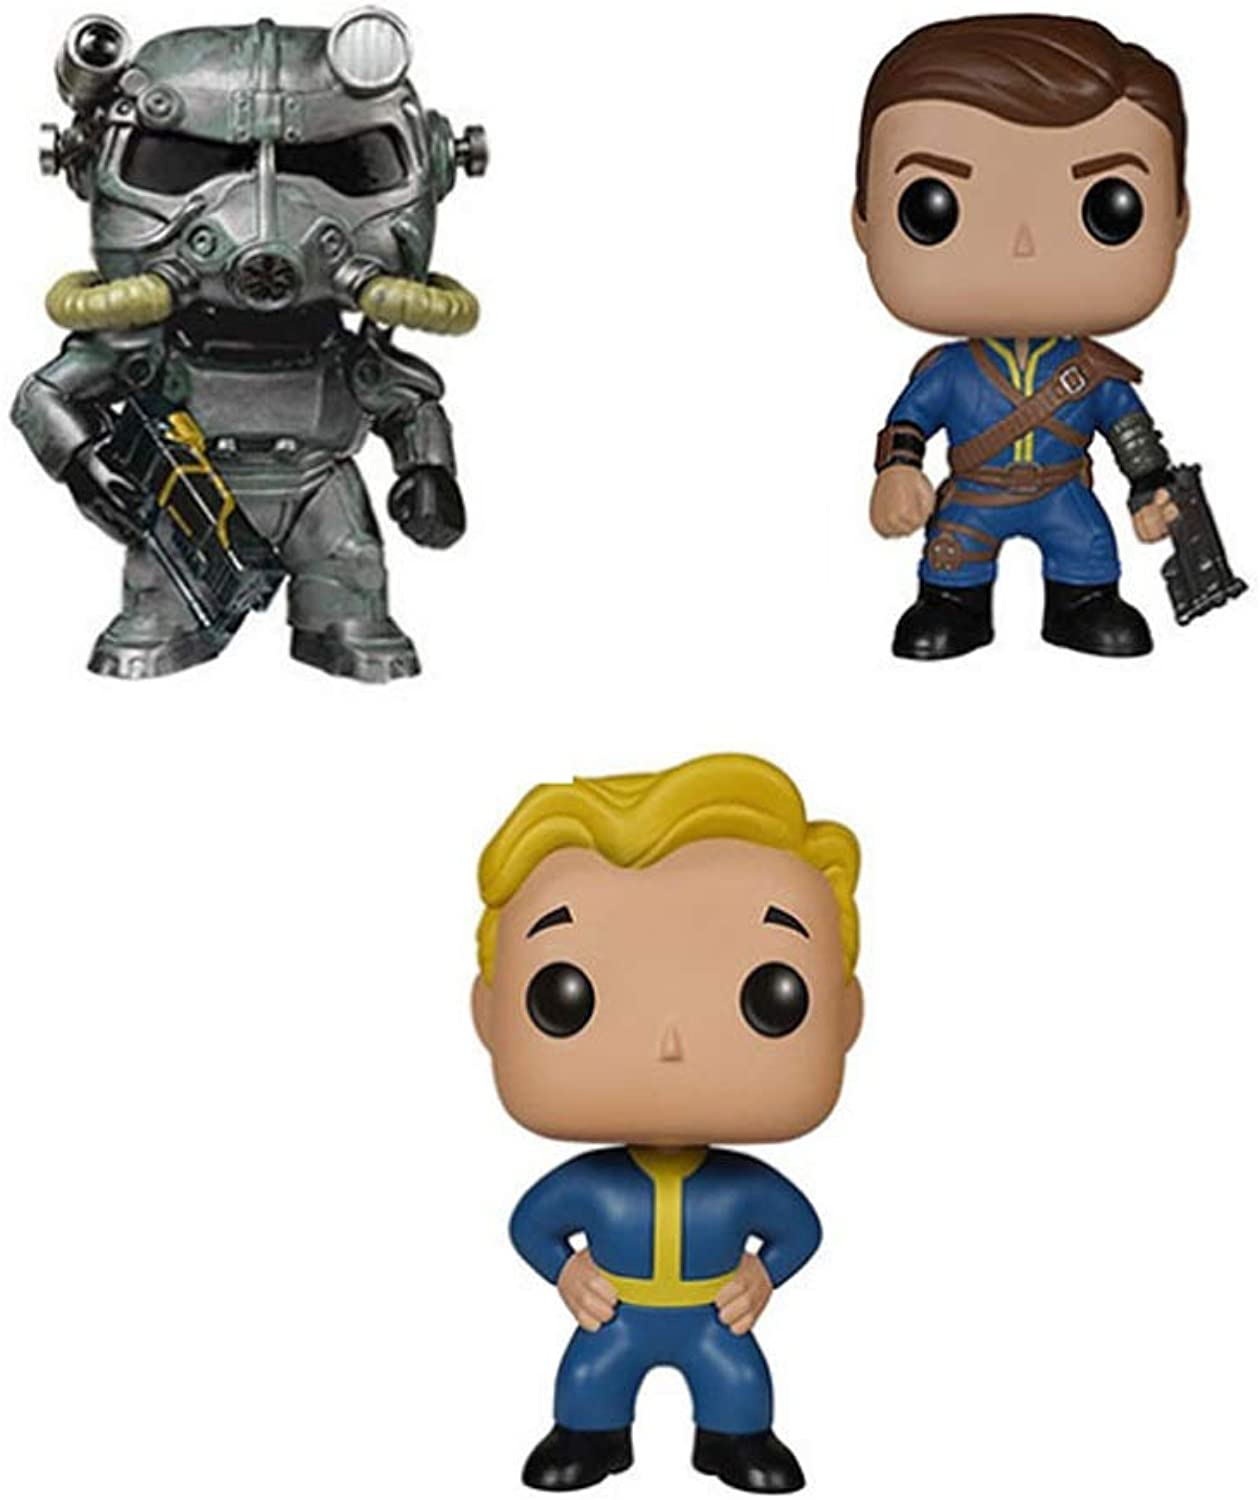 POP  Game Action Character Model(3Piece) Blond Man Armored Warrior Shooting Kid Action Figure